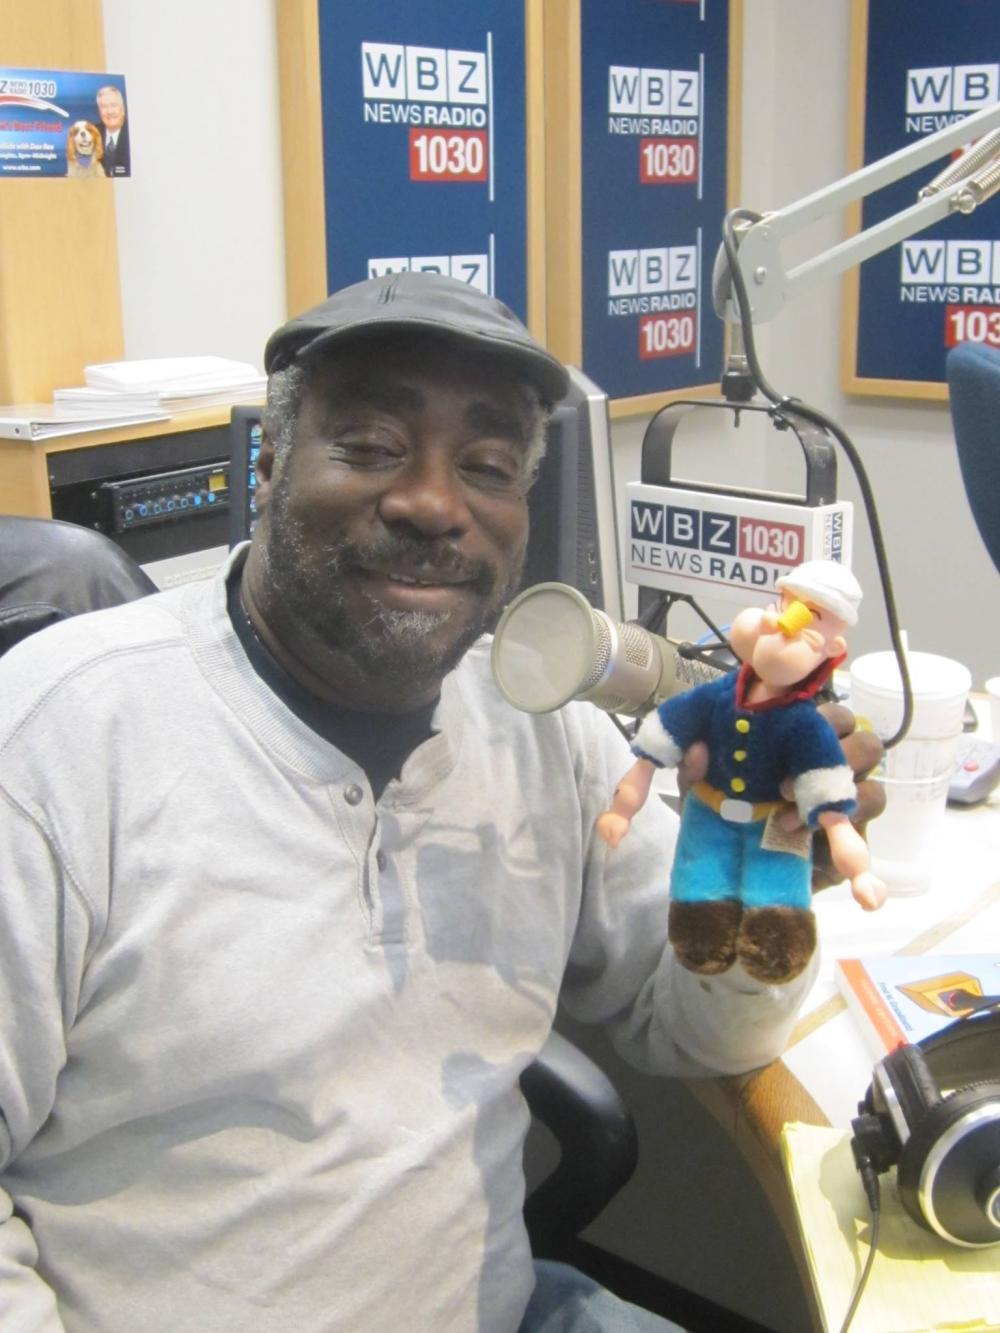 Morgan White, popular host of WBZ Radio's